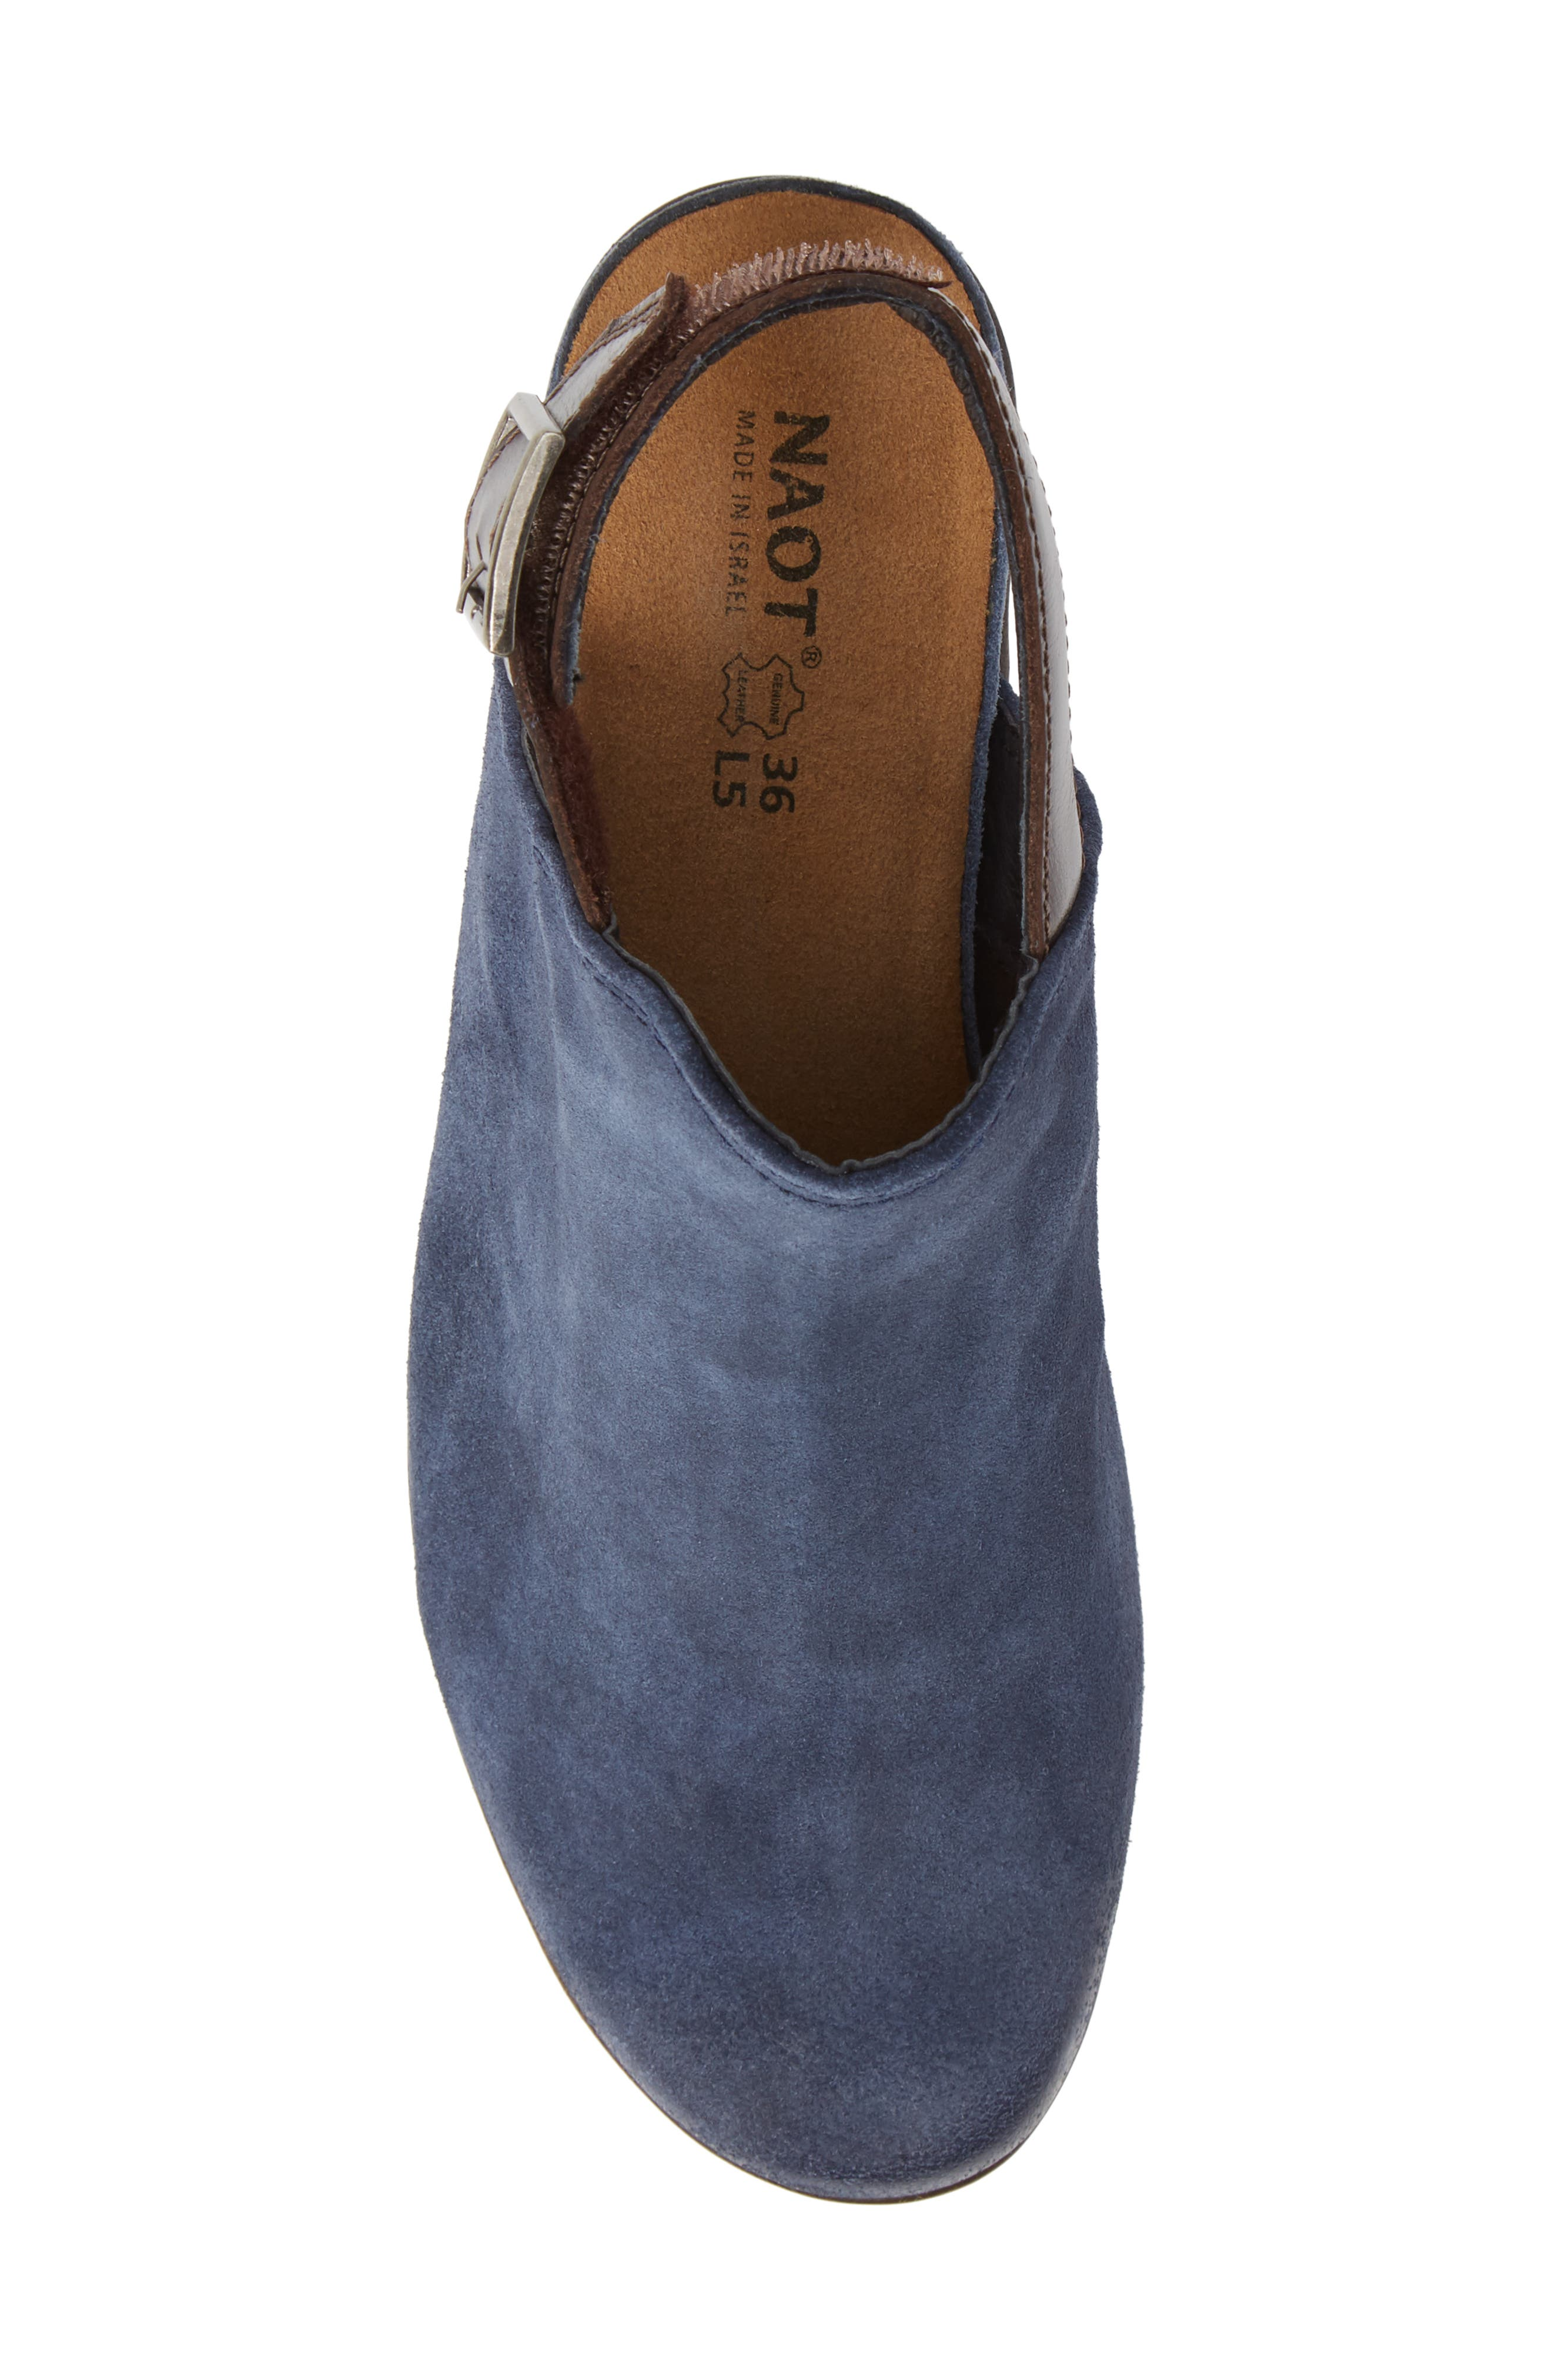 Upgrade Bootie,                             Alternate thumbnail 5, color,                             BLUE/ WALNUT SUEDE/ LEATHER